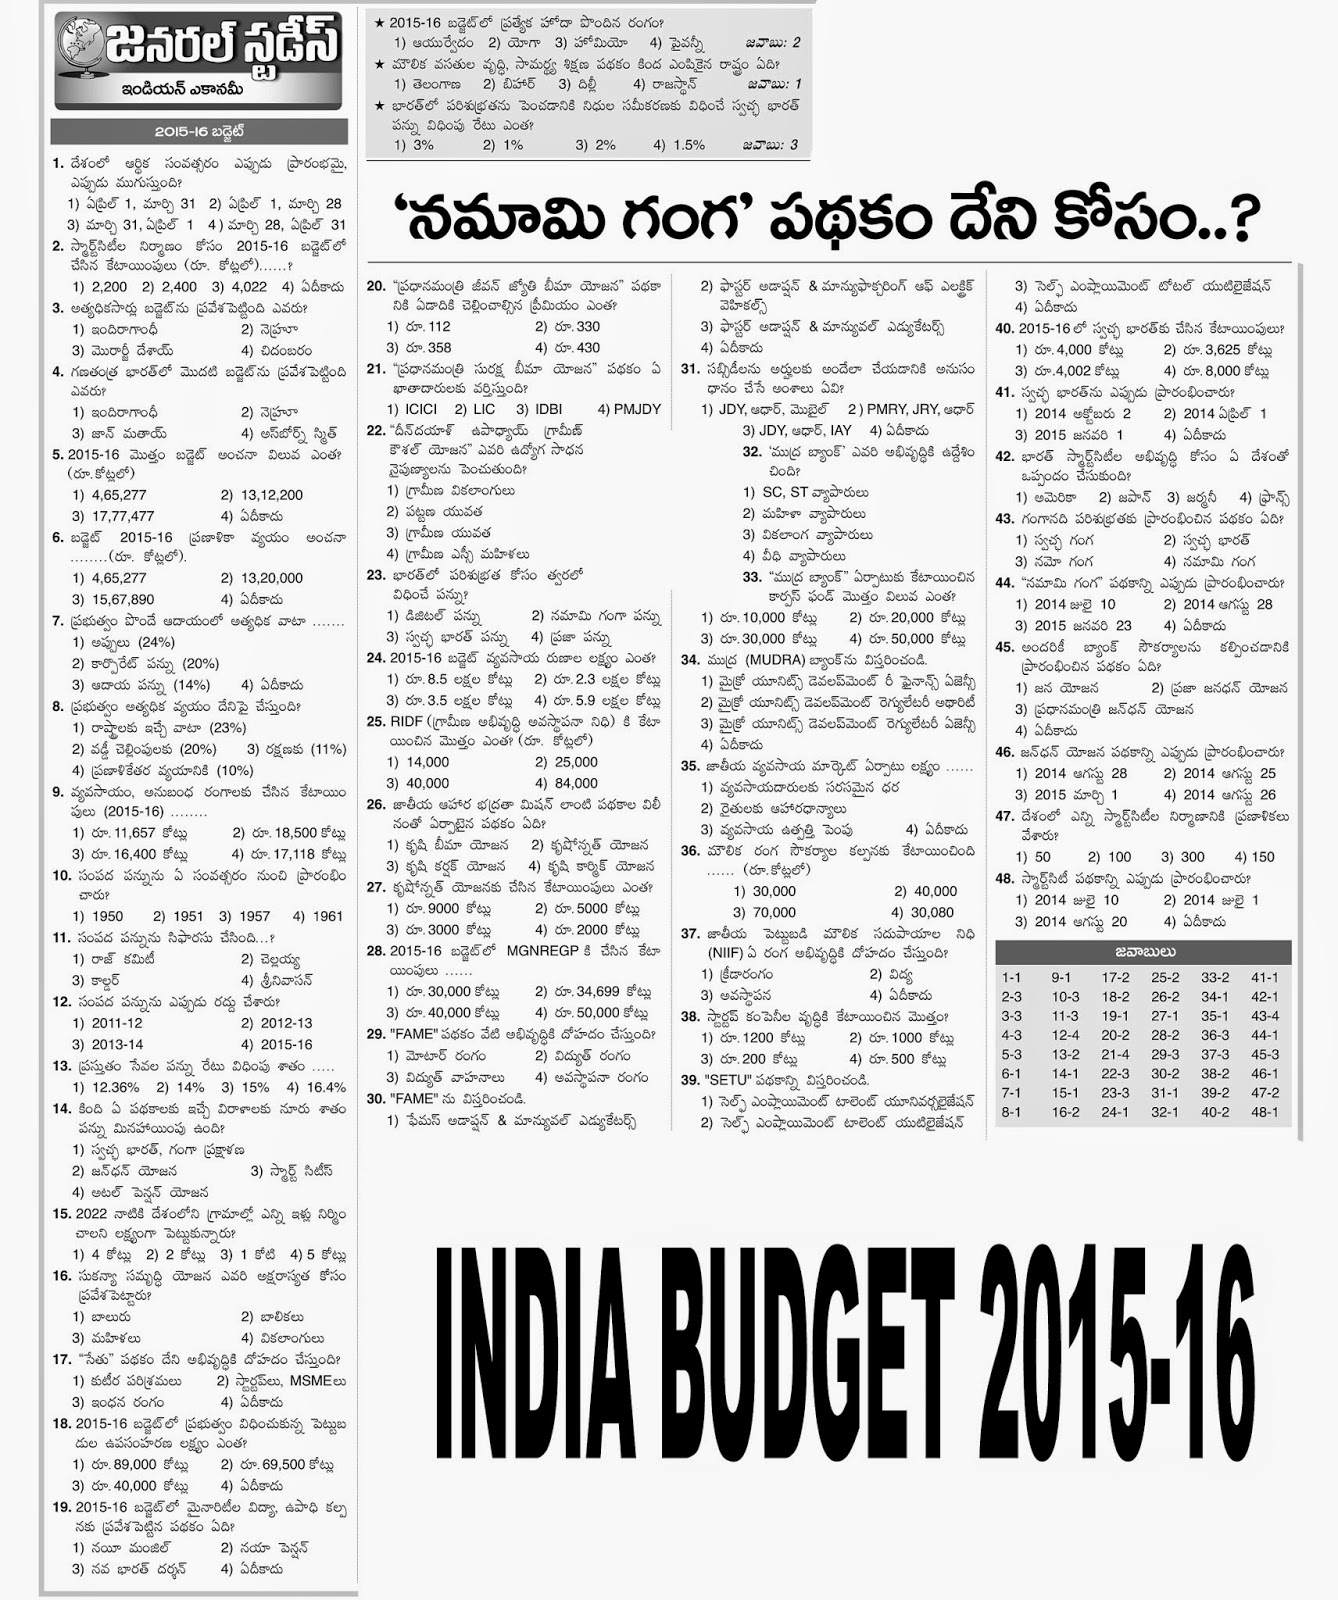 APPSC MATERIAL: INDIA BUDGET 2015-16 PRACTICE QUESTIONS